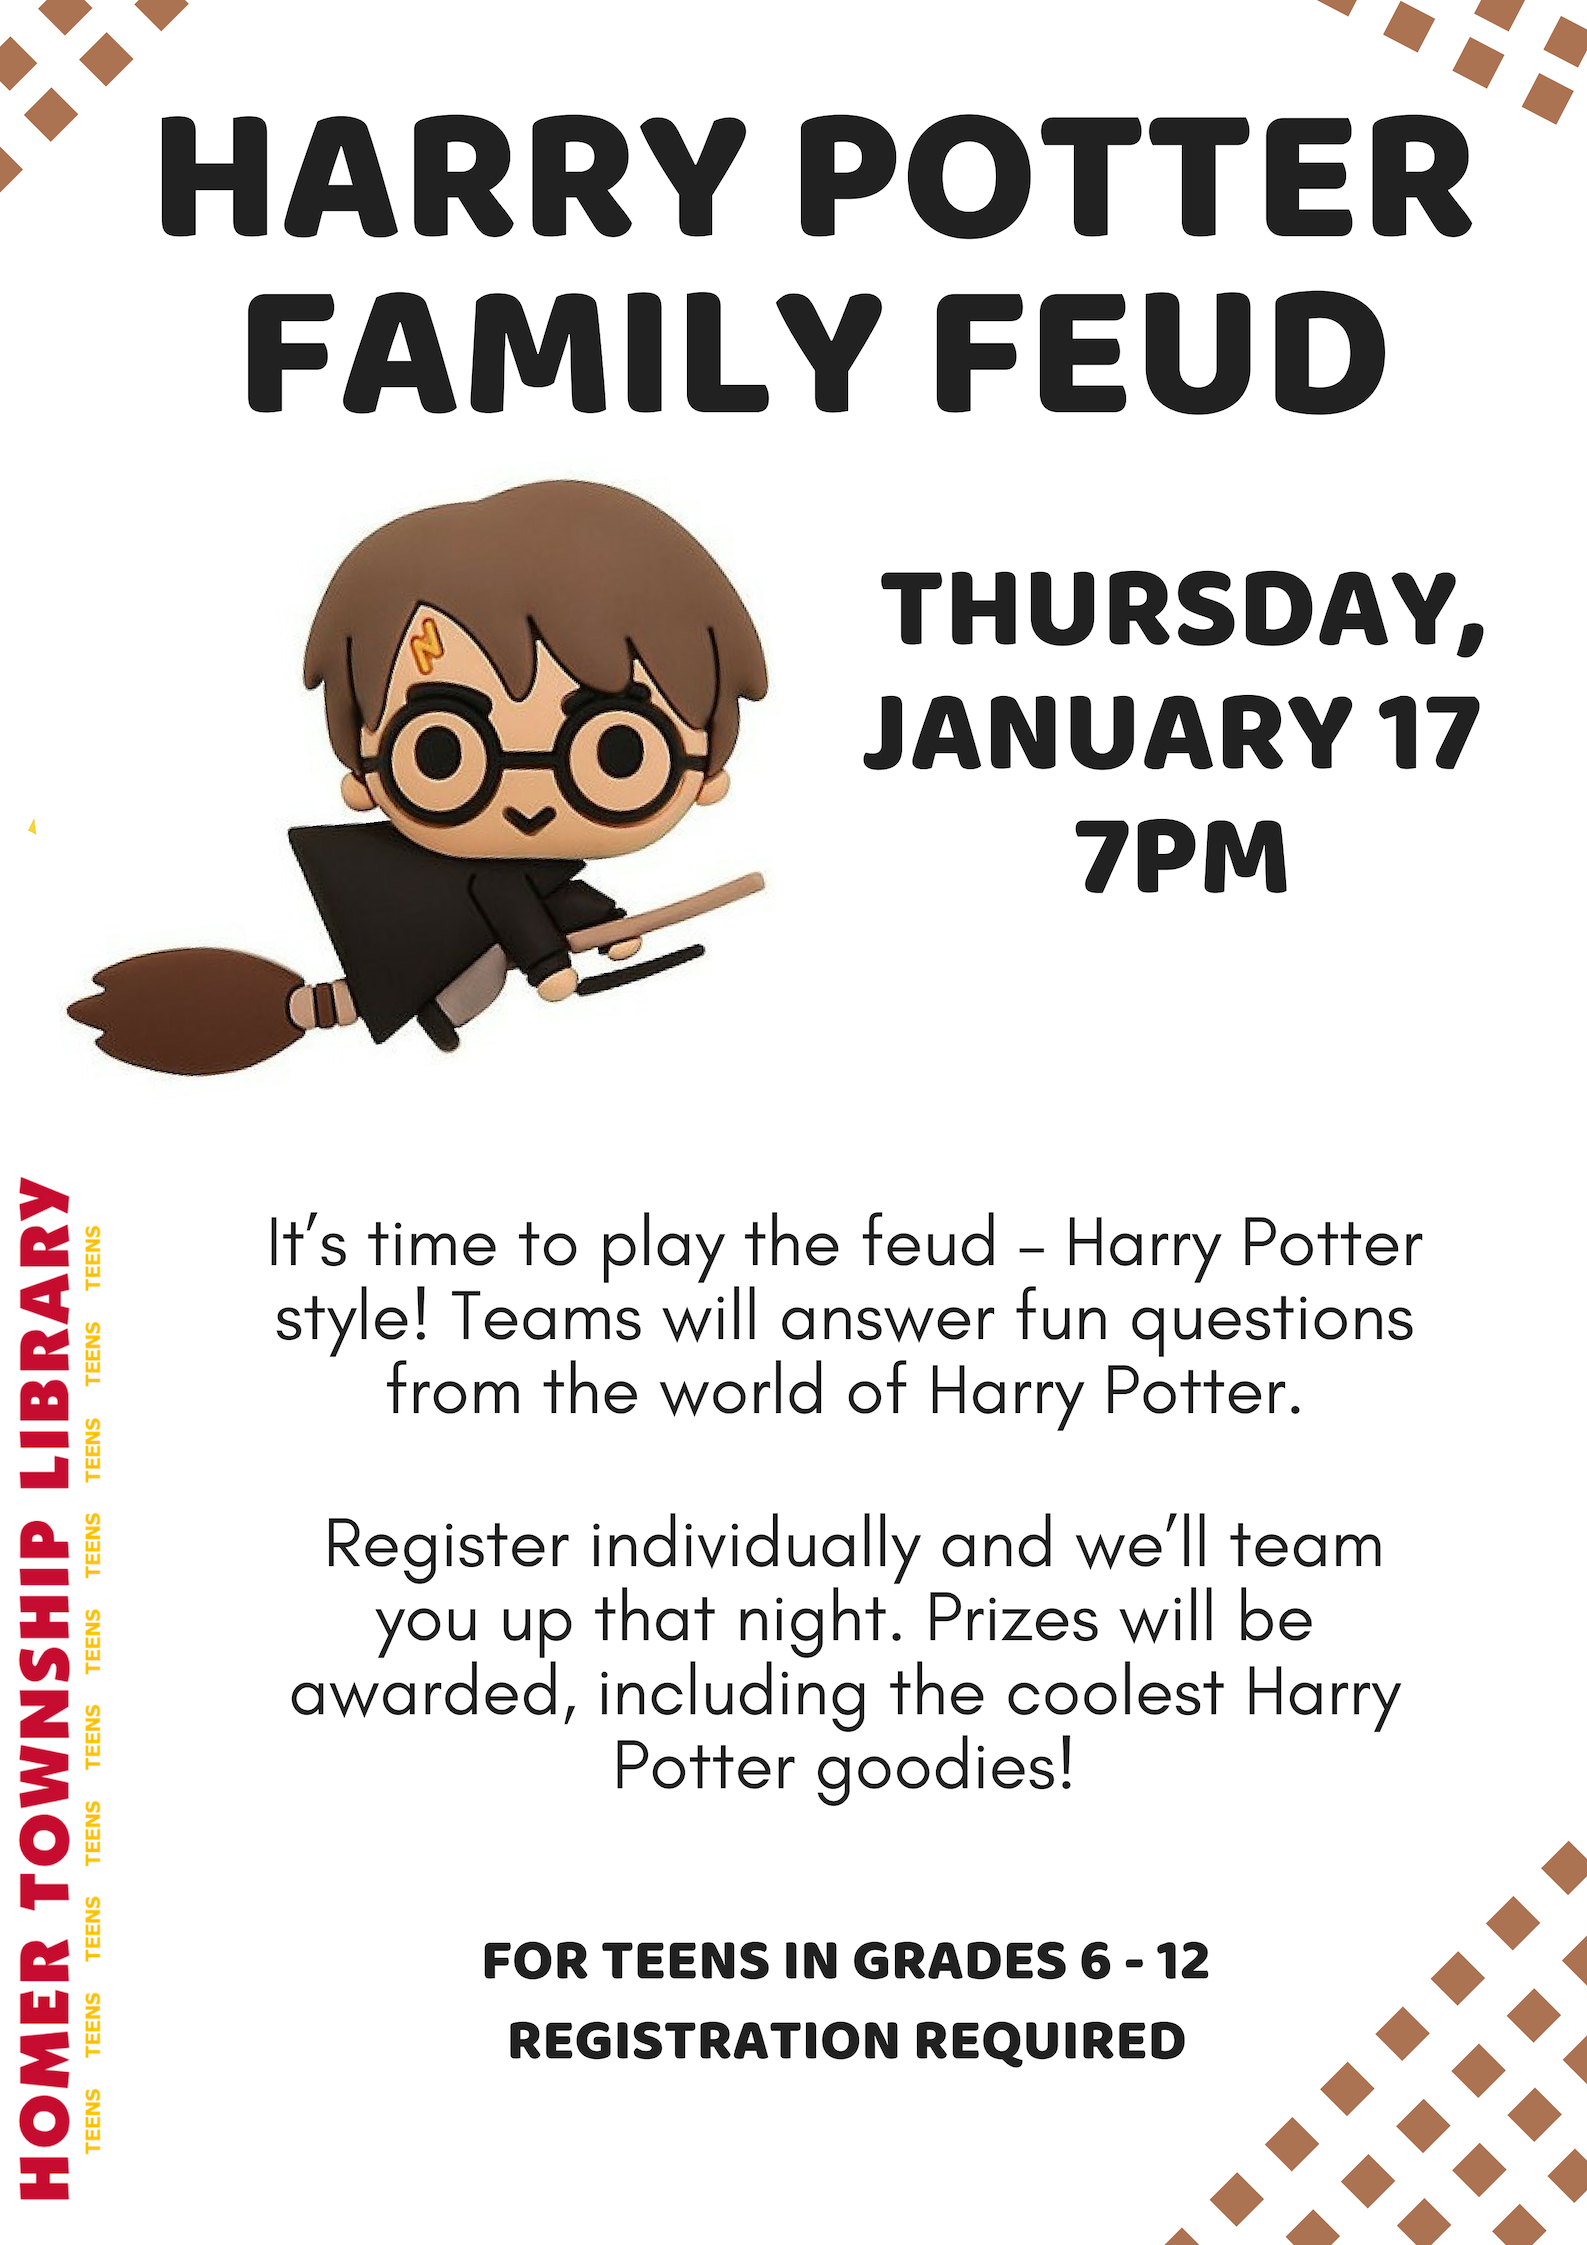 HARRY POTTER FAMILY FEUD | Homer Township Public Library